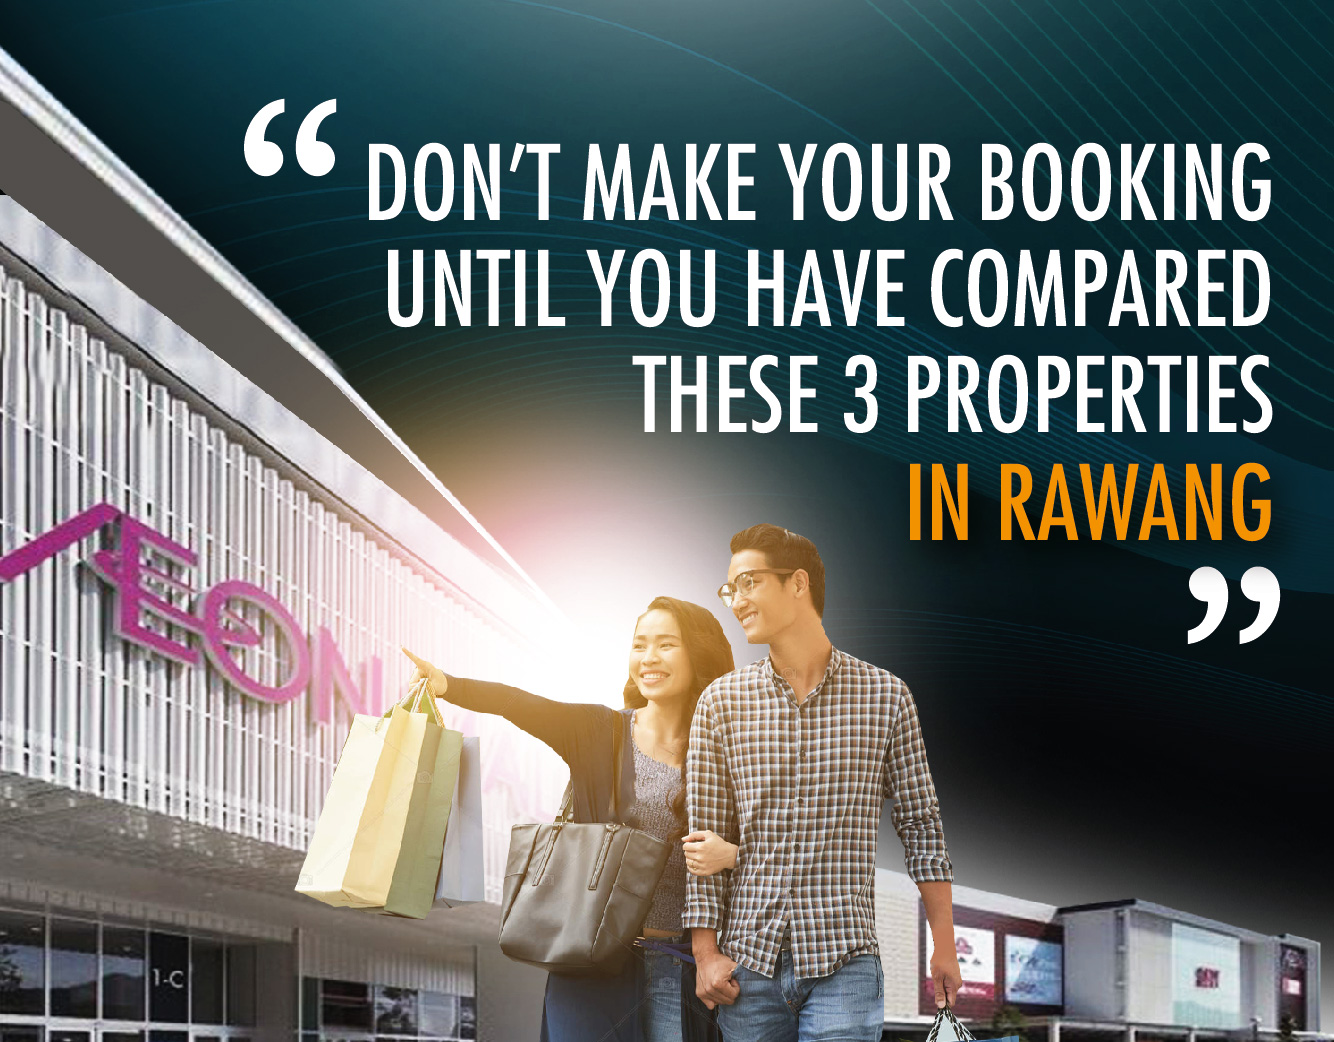 Don't make your booking until you have compared these 3 properties in Rawang!